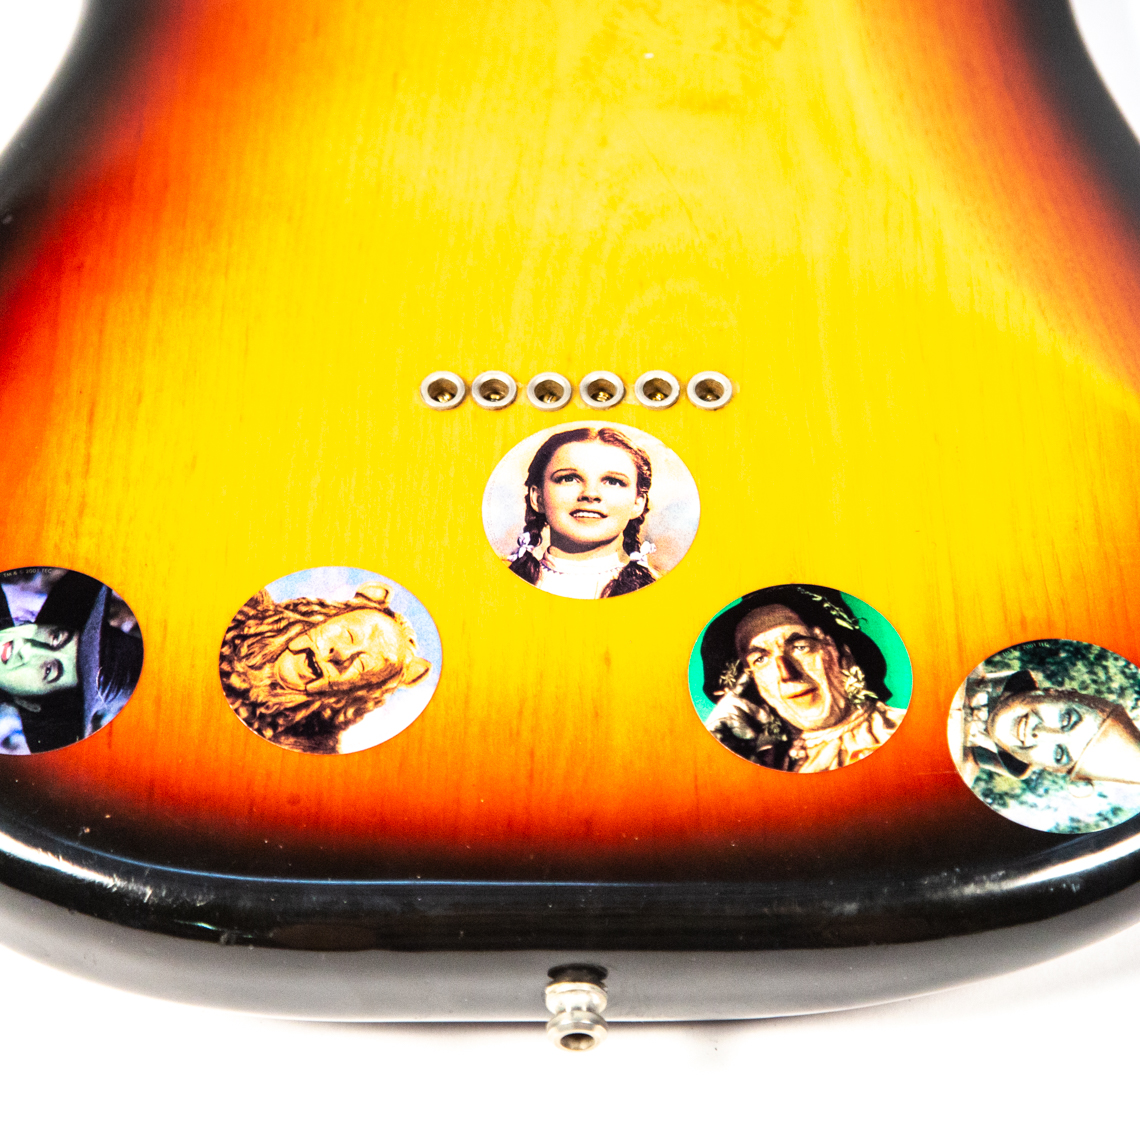 Stickers on the '76 Fender Strat